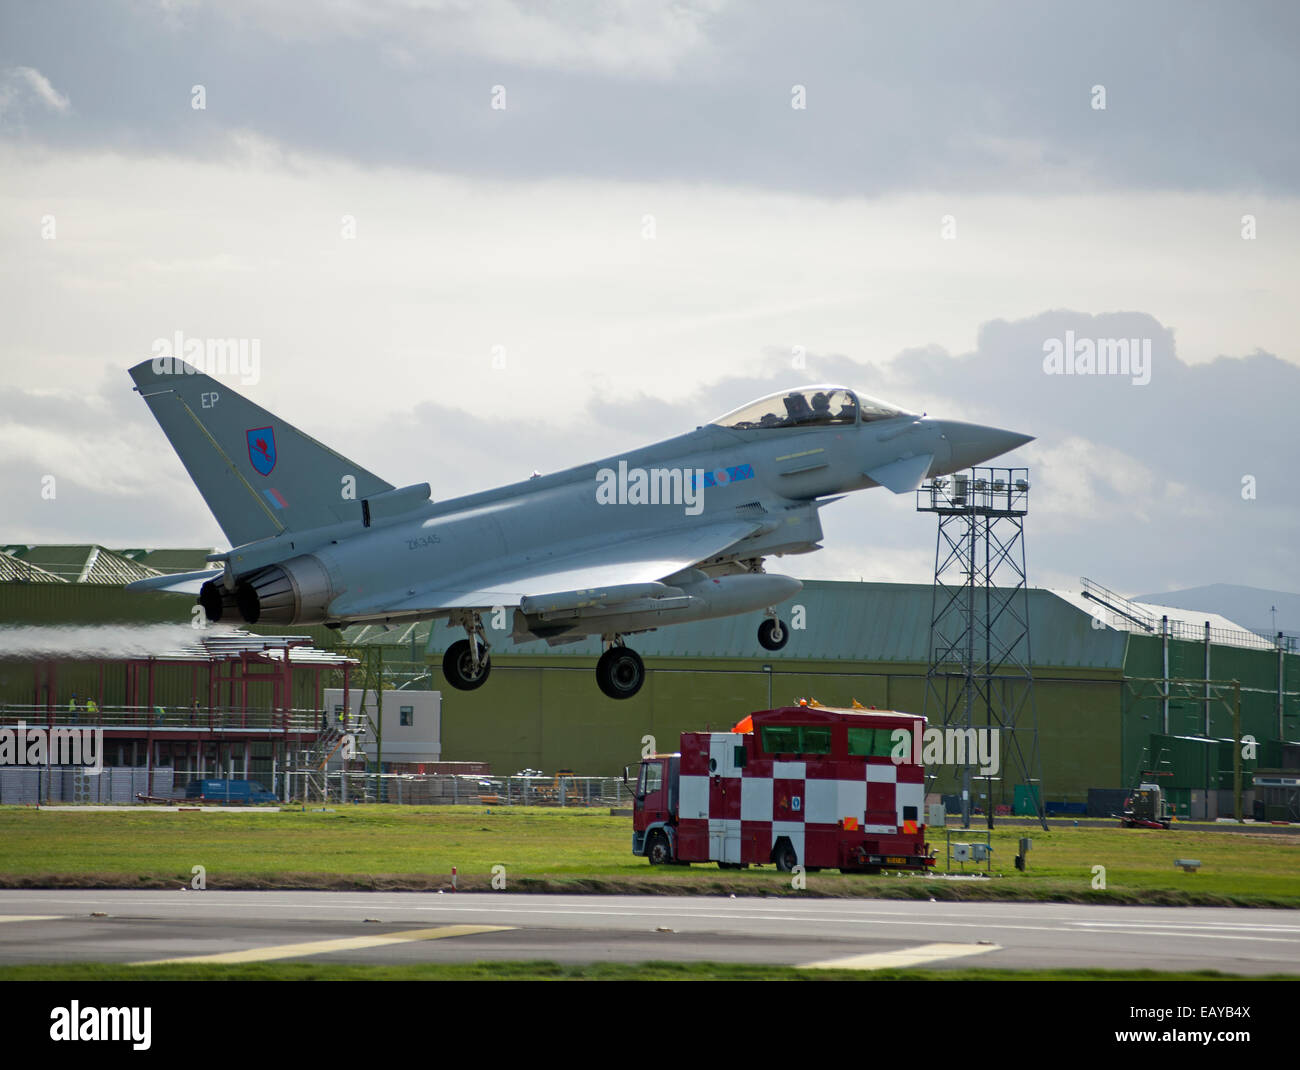 Eurofighter Typhoon FRG4 Military Fast Jet Fighter about to land at RAF Lossiemouth.  SCO 9169 - Stock Image